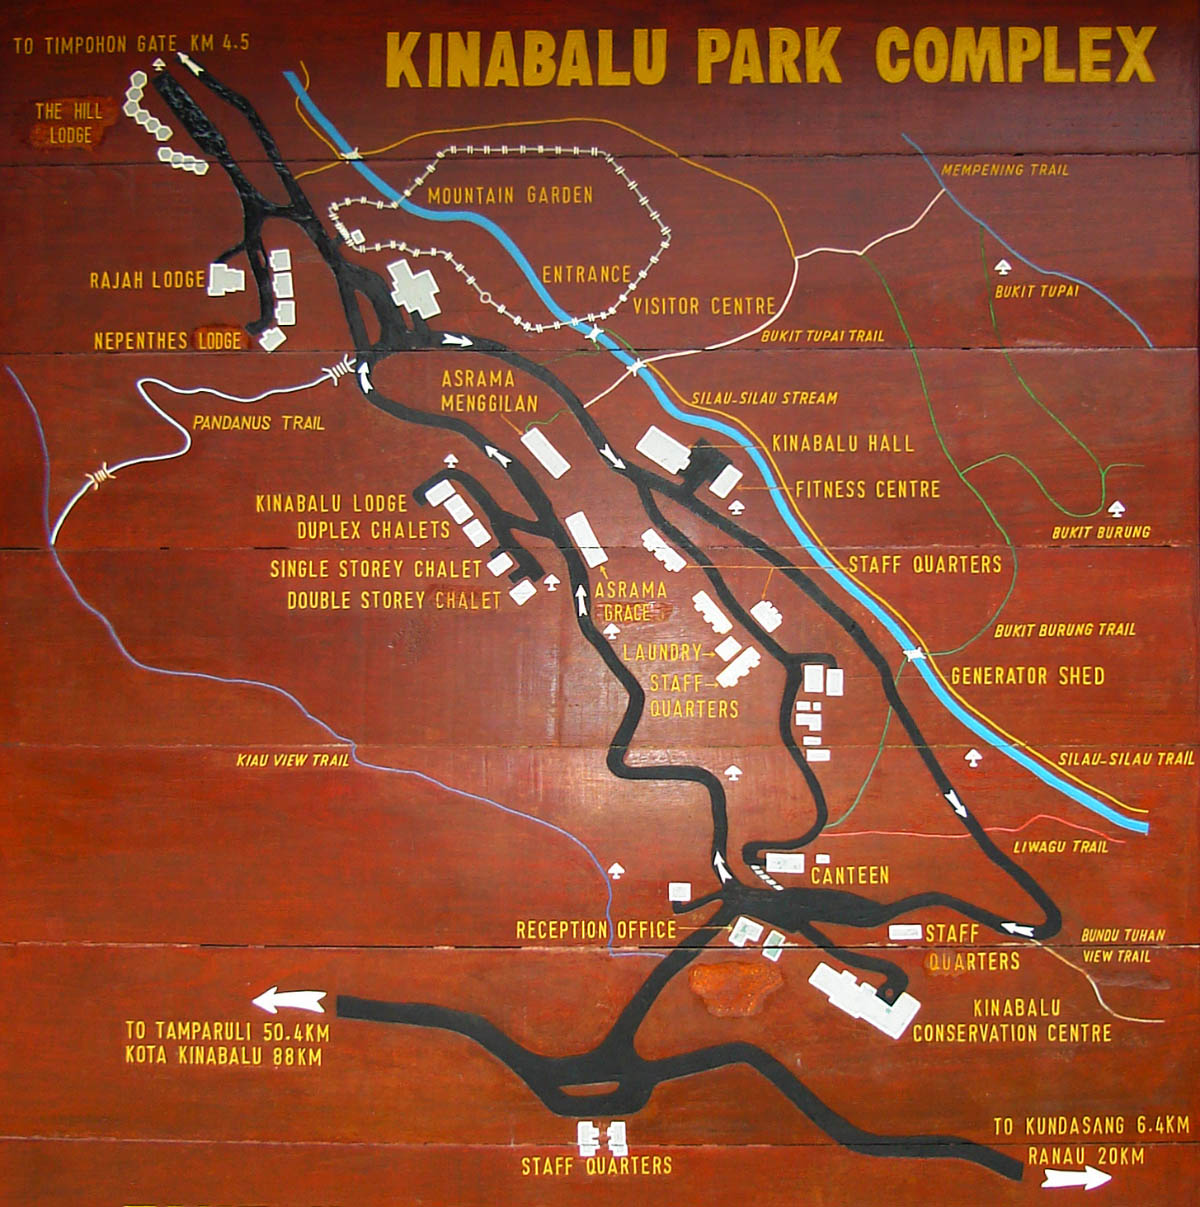 Layout map of Kinabalu Park Complex